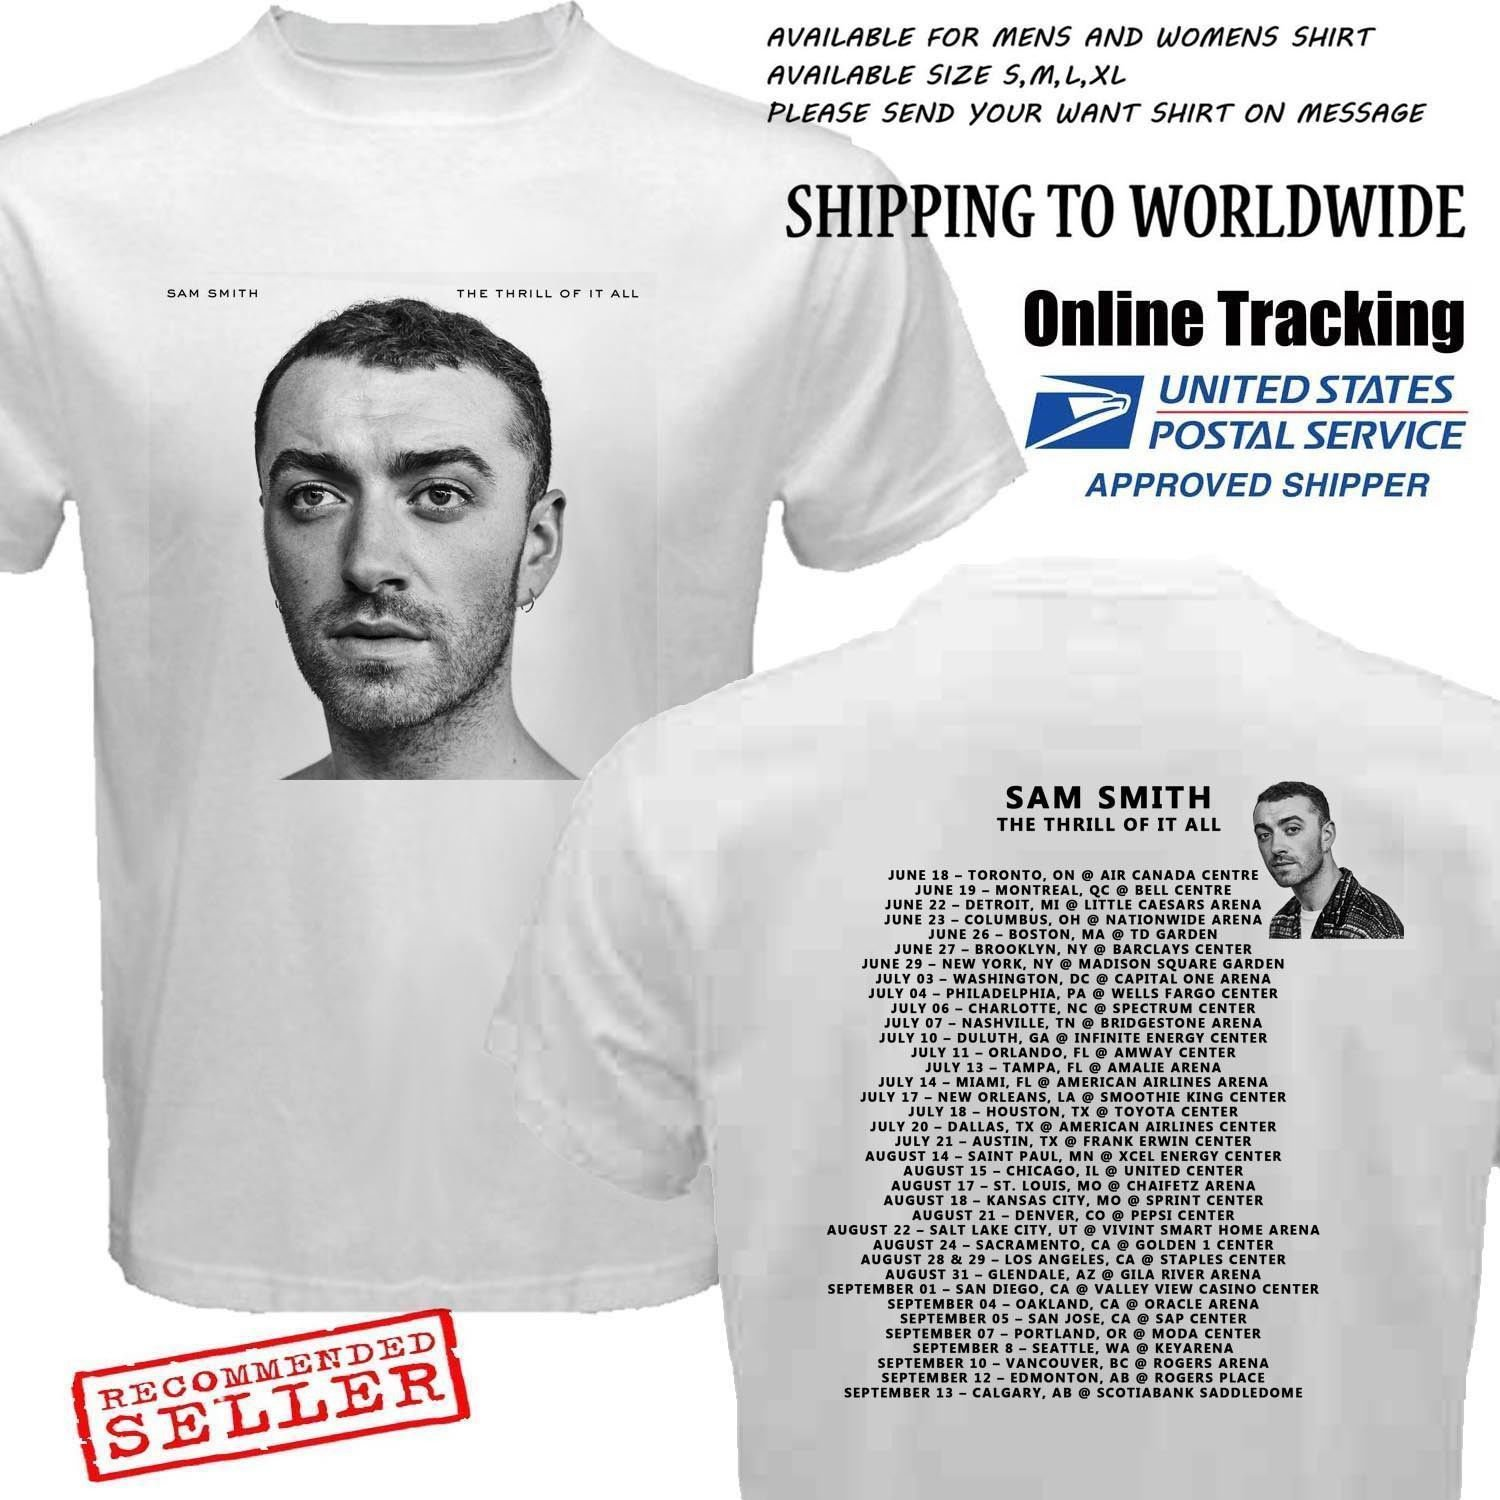 HOT NEW New SAM SMITH-THE-THRILL-OF-IT-ALL-Tour 2018 T-Shirts S-2XL